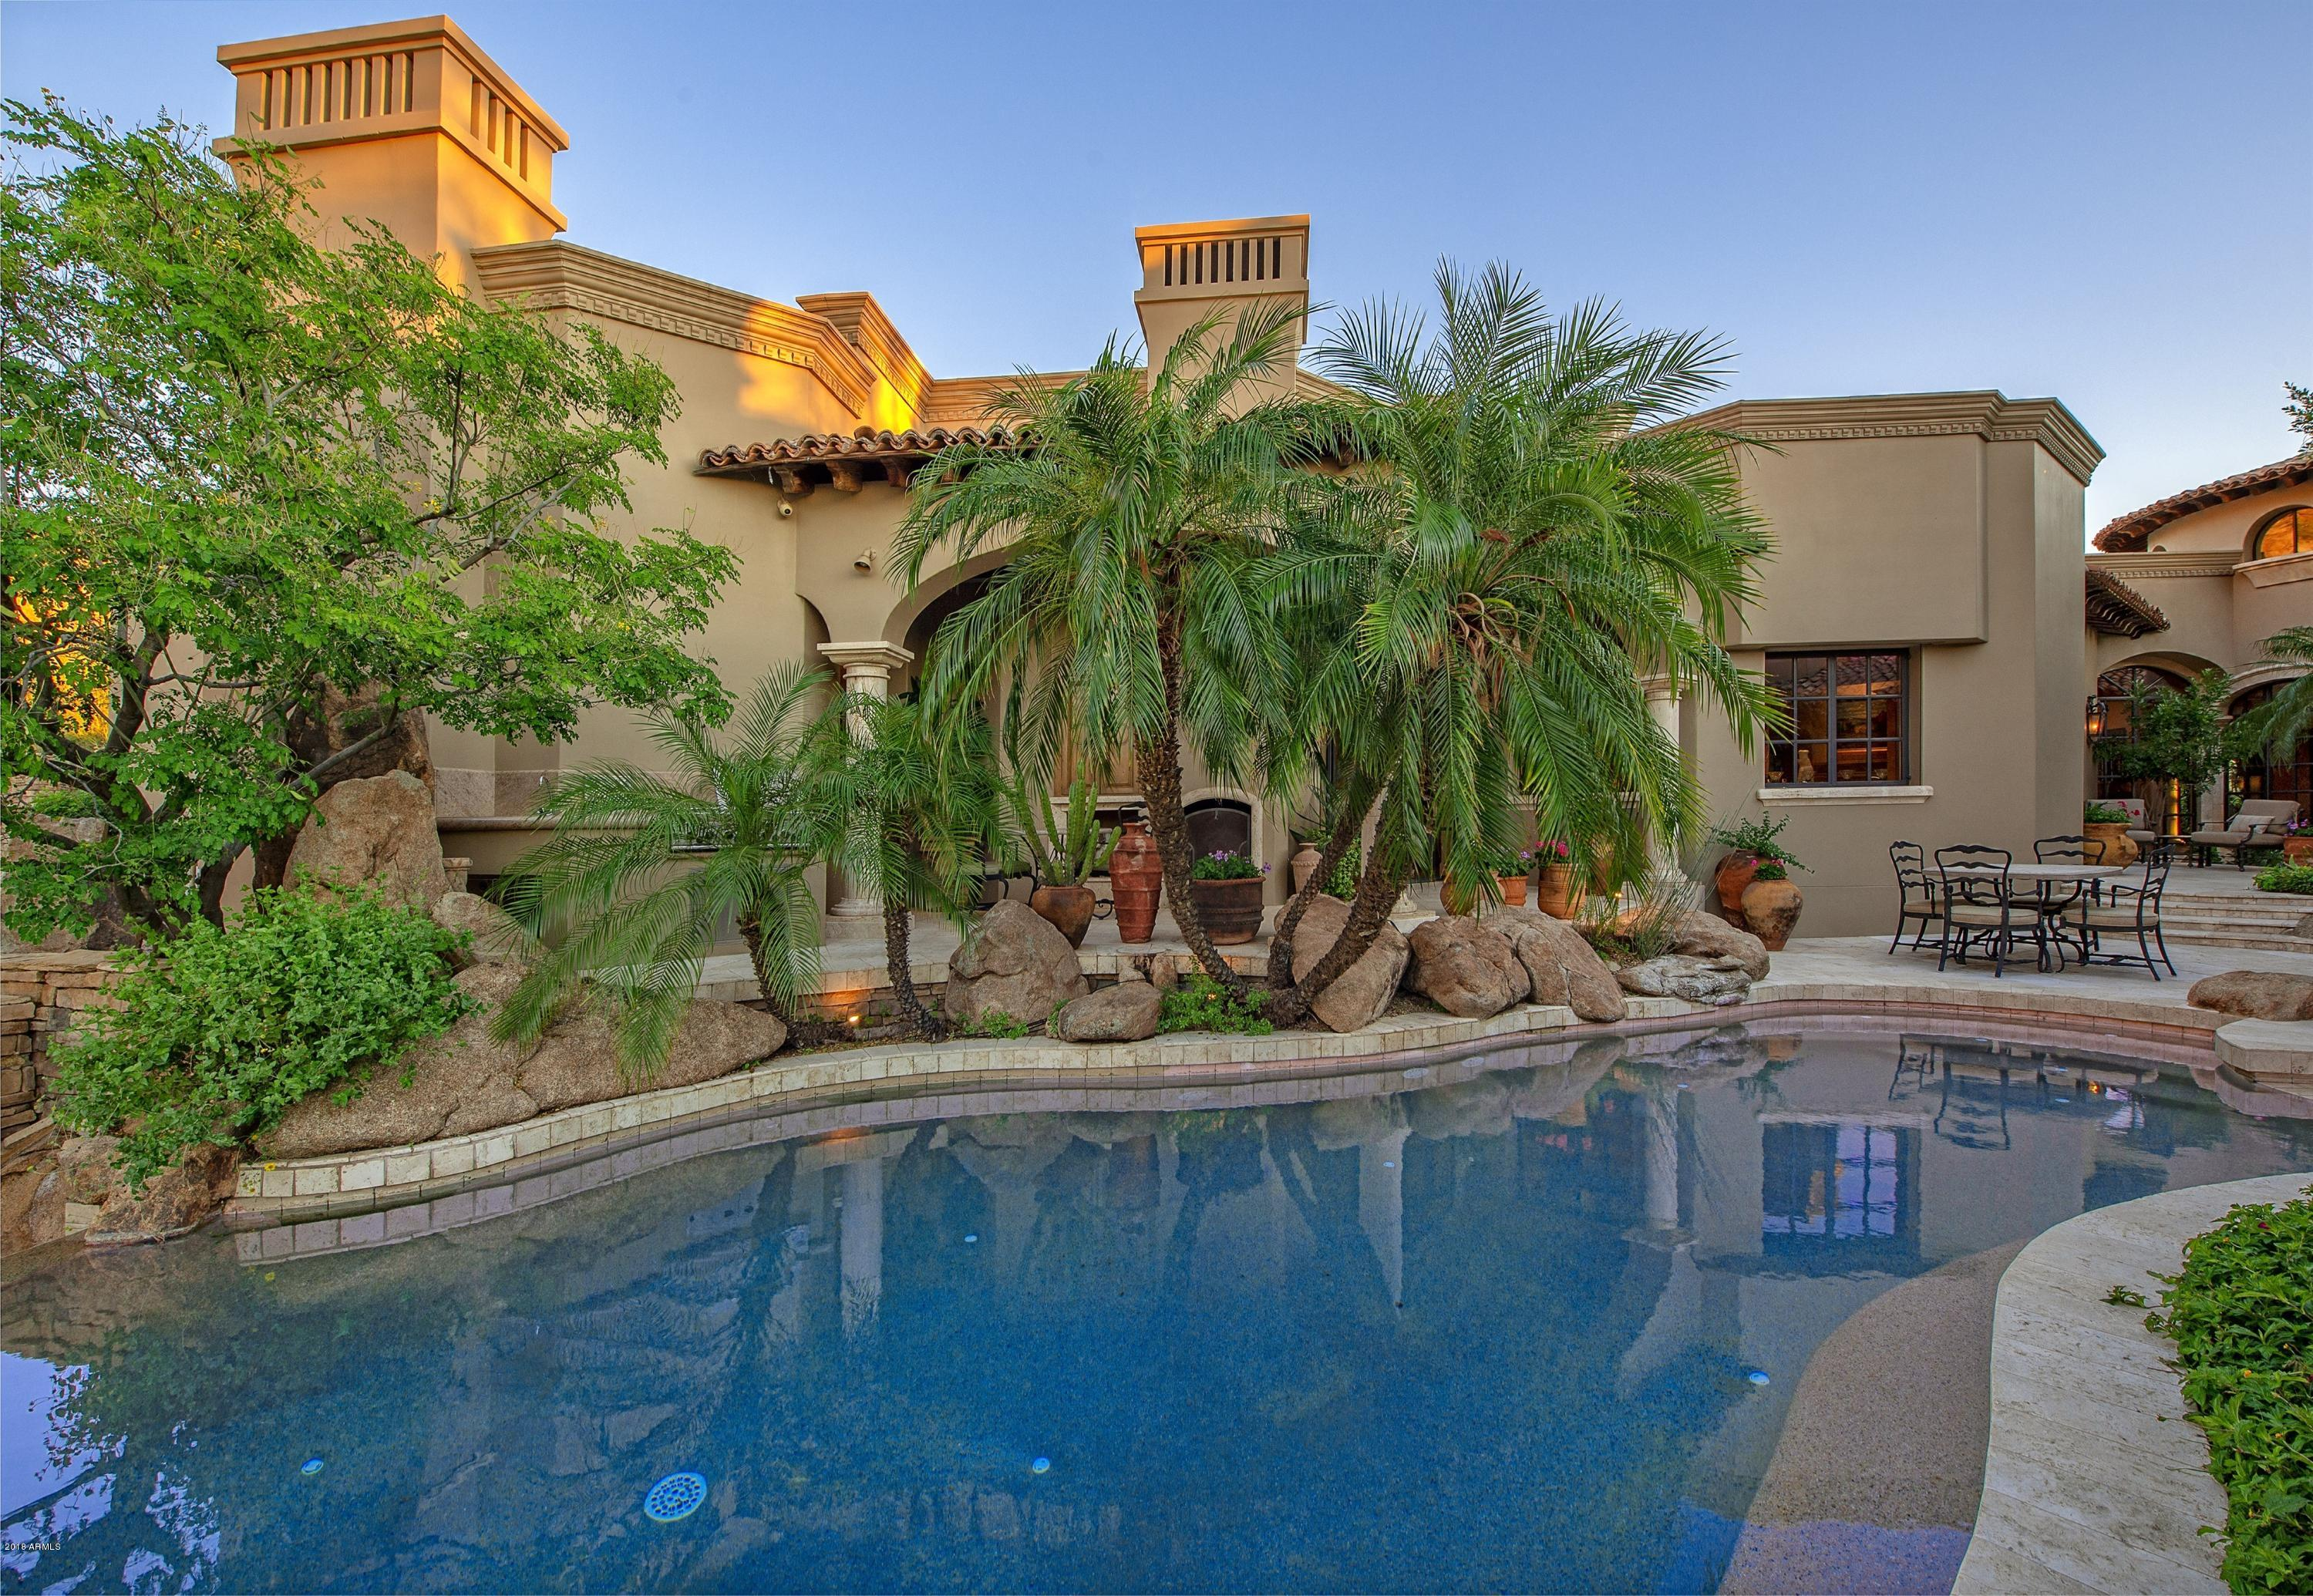 MLS 5842865 10040 E HAPPY VALLEY Road Unit 52, Scottsdale, AZ 85255 Scottsdale AZ Desert Highlands